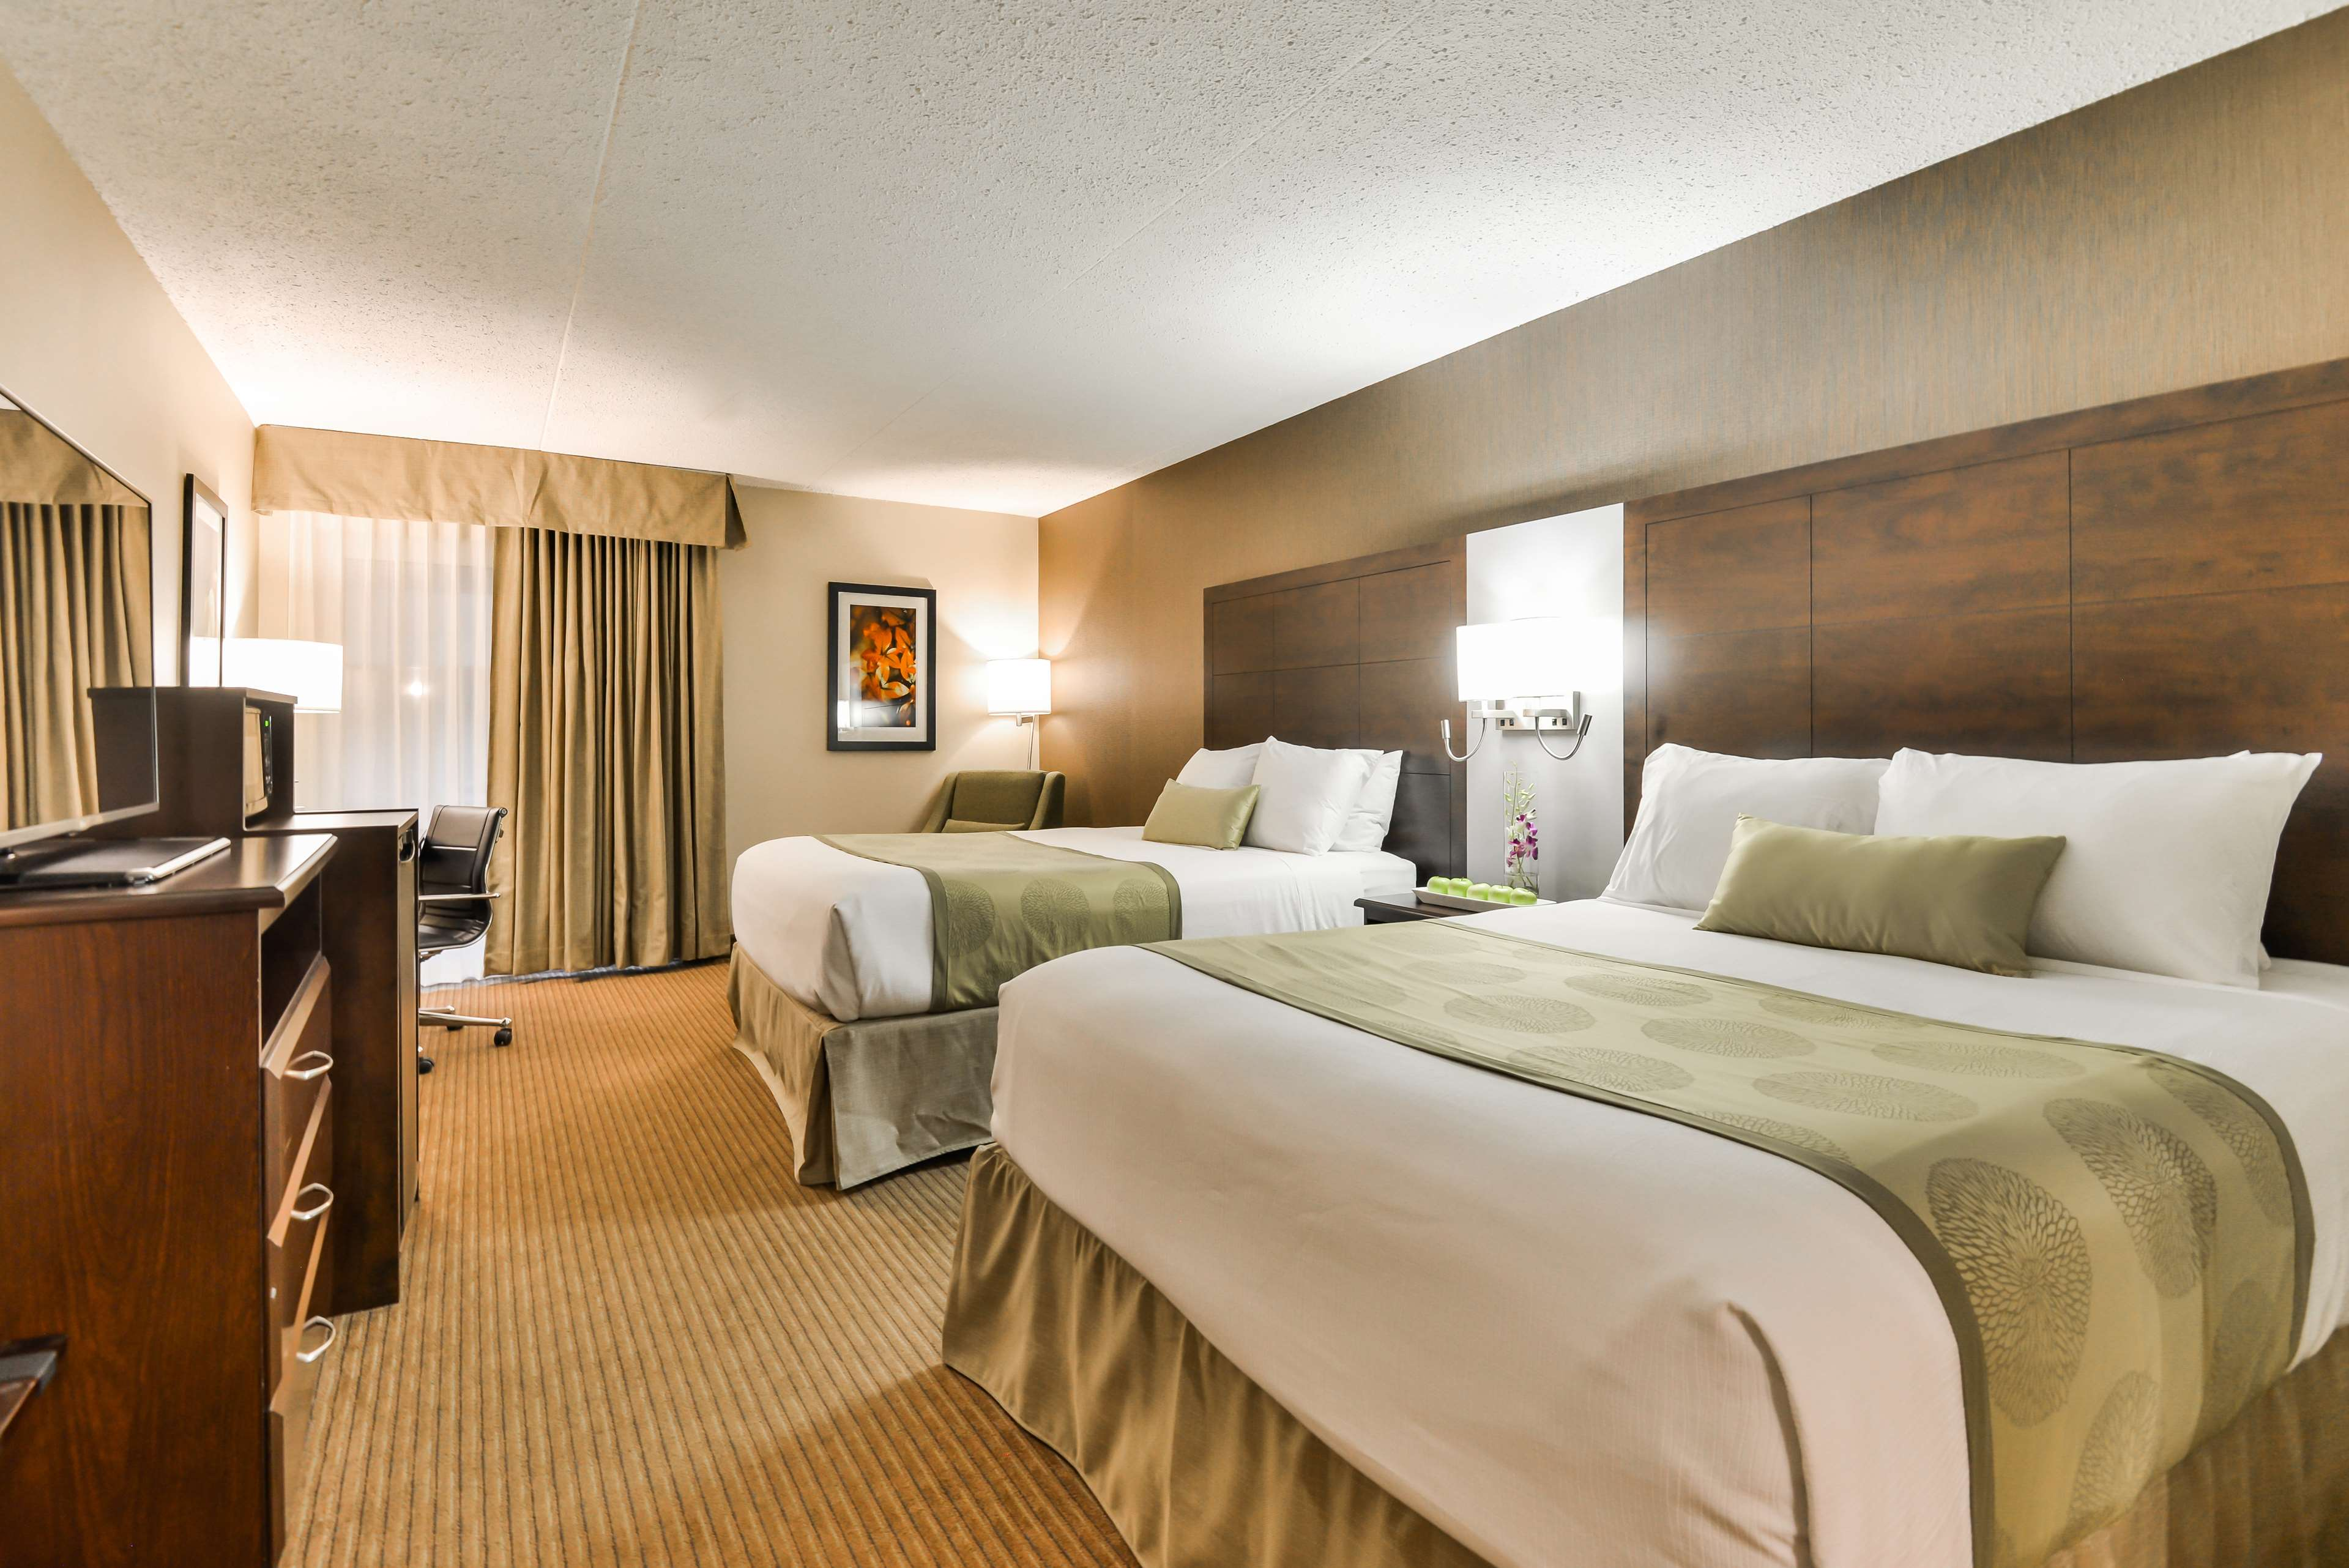 Two Queen Bed Guest Room Best Western Plus Leamington Hotel & Conference Centre Leamington (519)326-8646